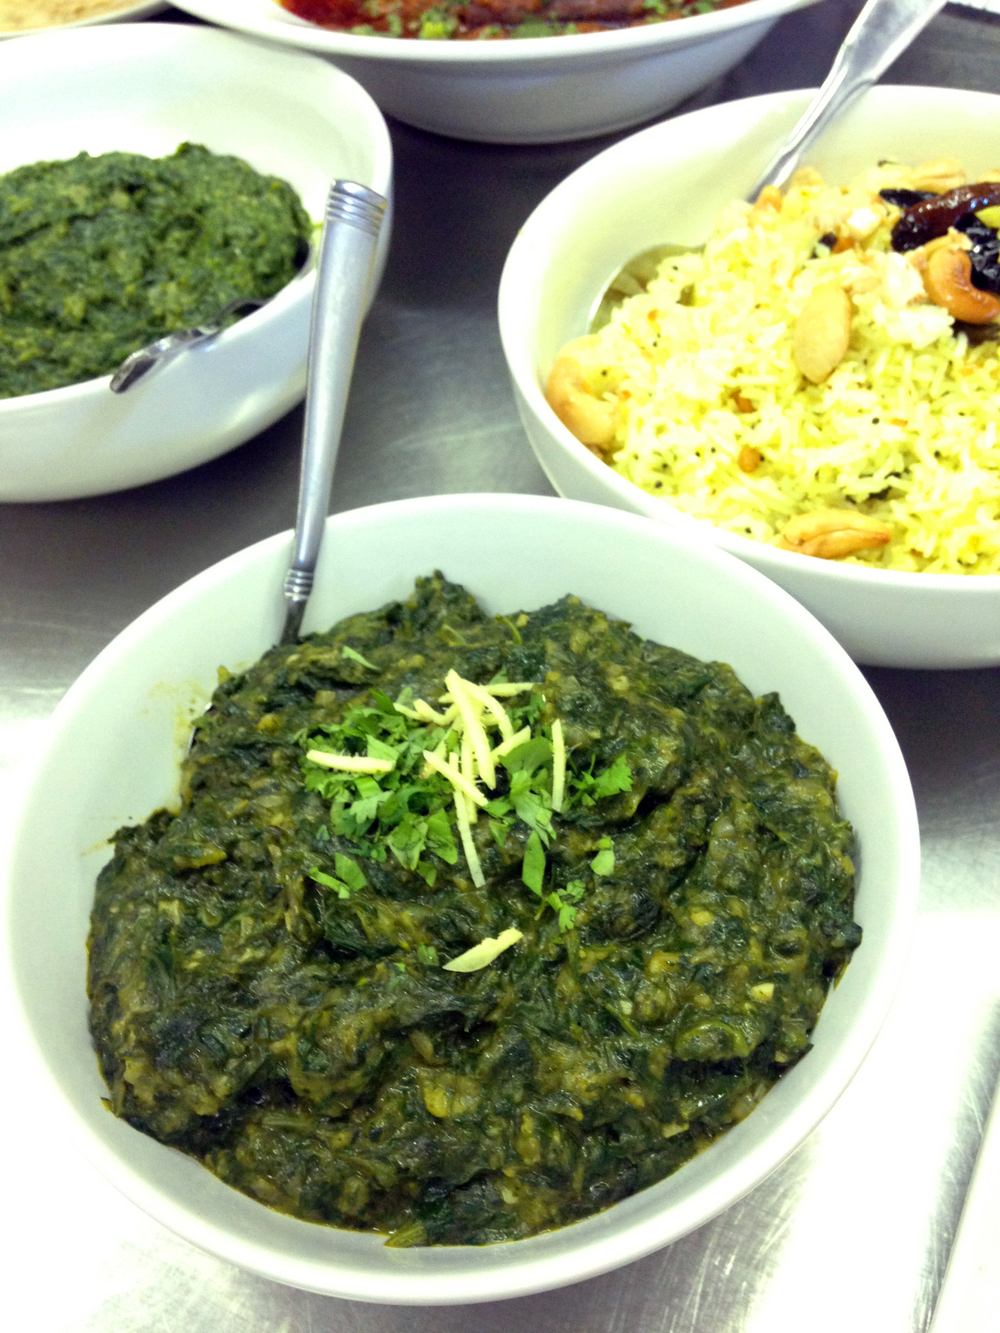 Punjabi greens consisted of mustard greens, spinach, and fenugreek leaves